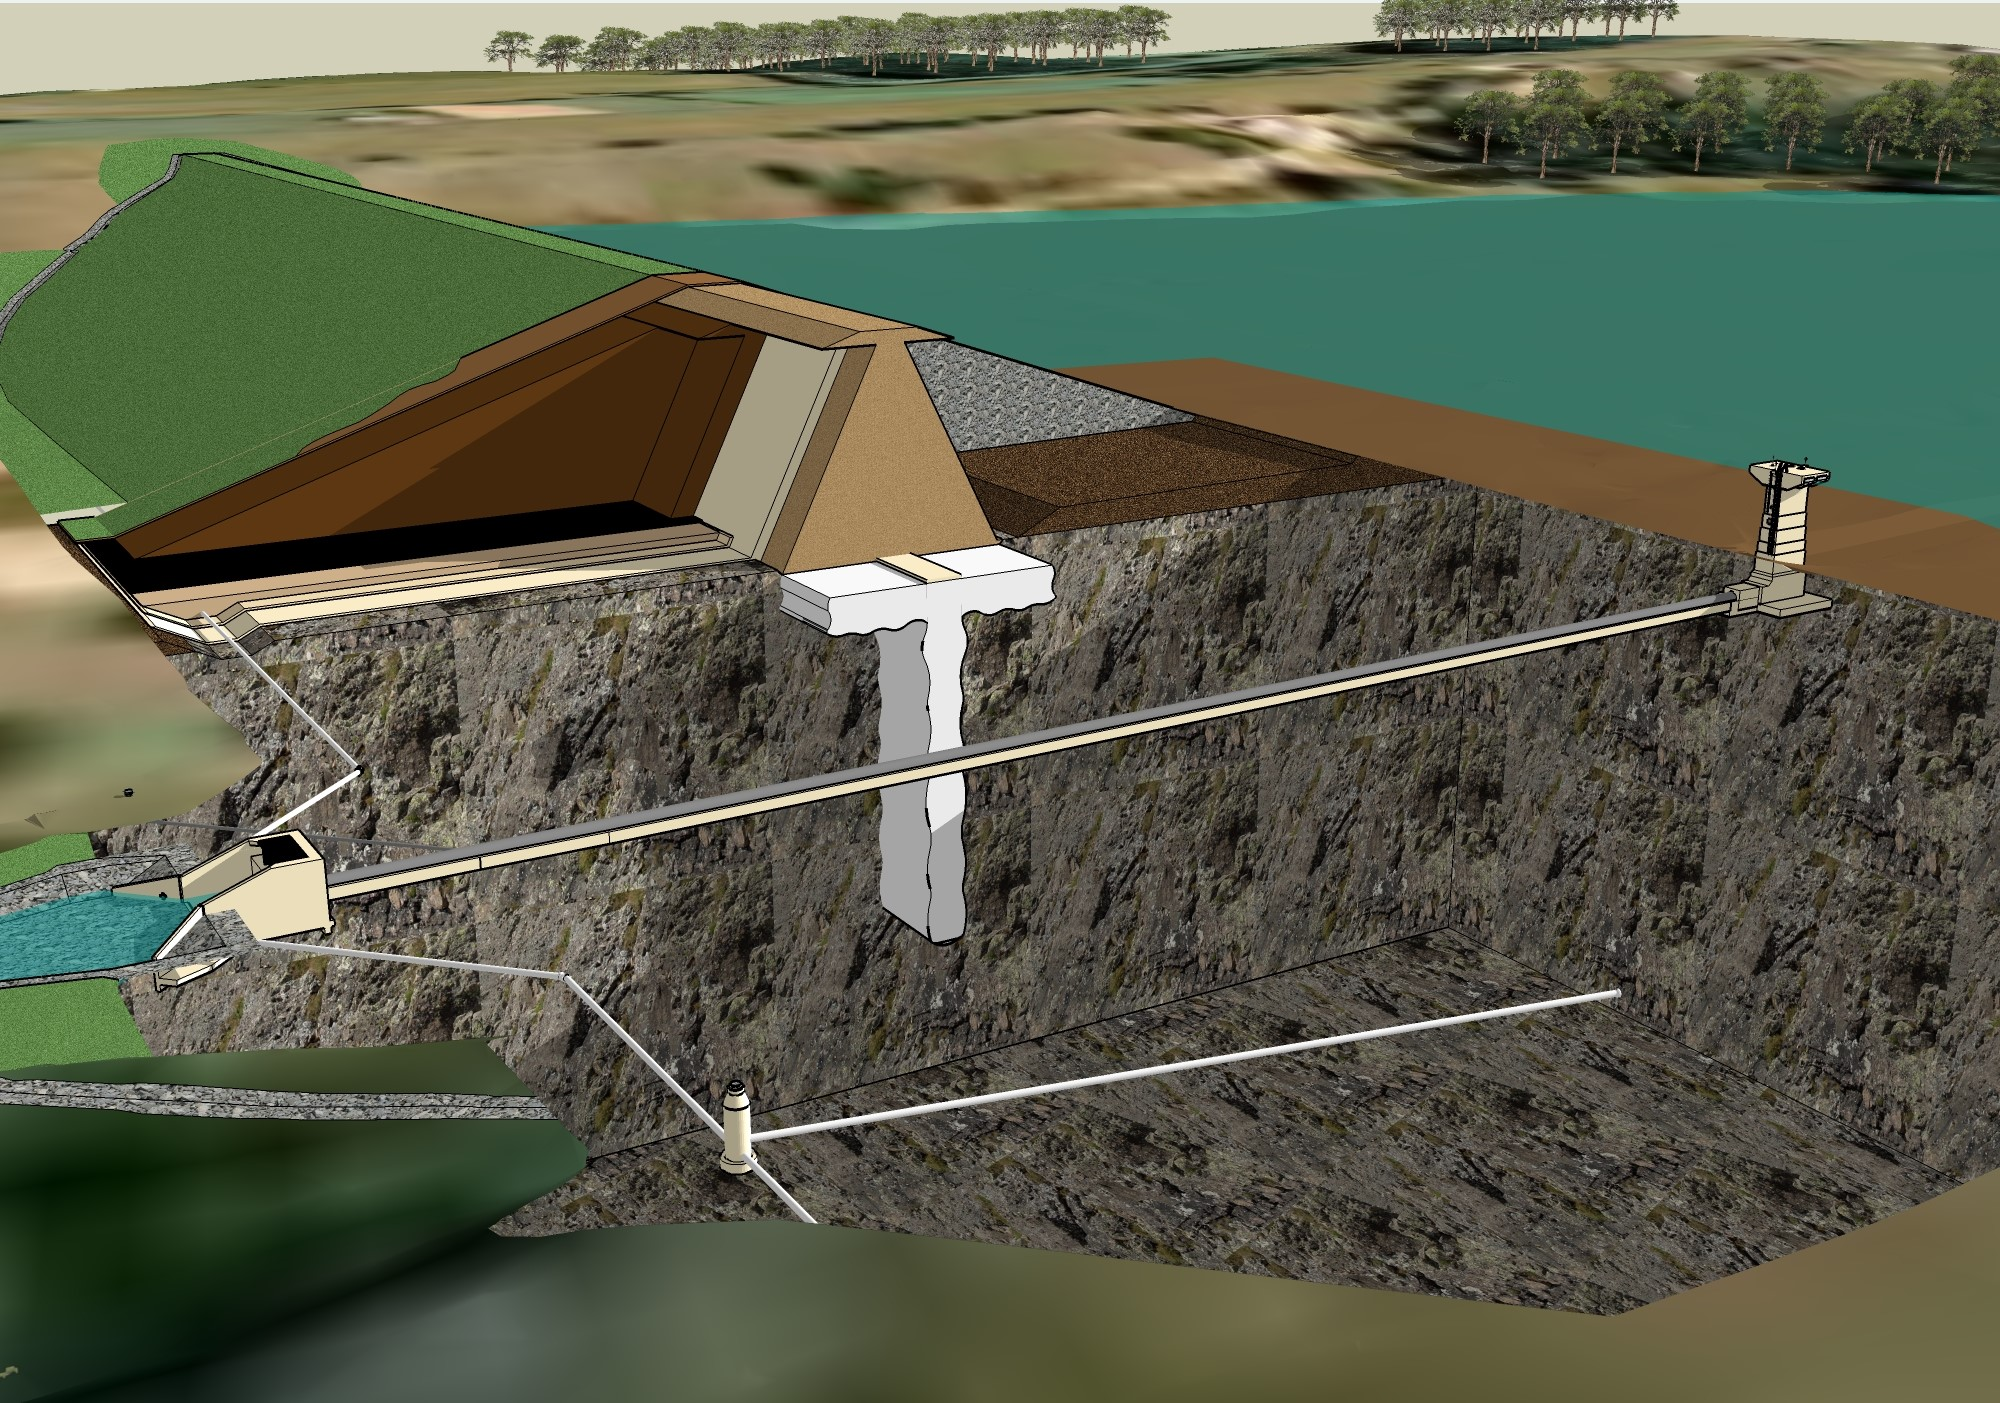 hight resolution of cross sectional view of a typical earthen embankment dam with a riser structure and conduit through the embankment typically a riser structure would be